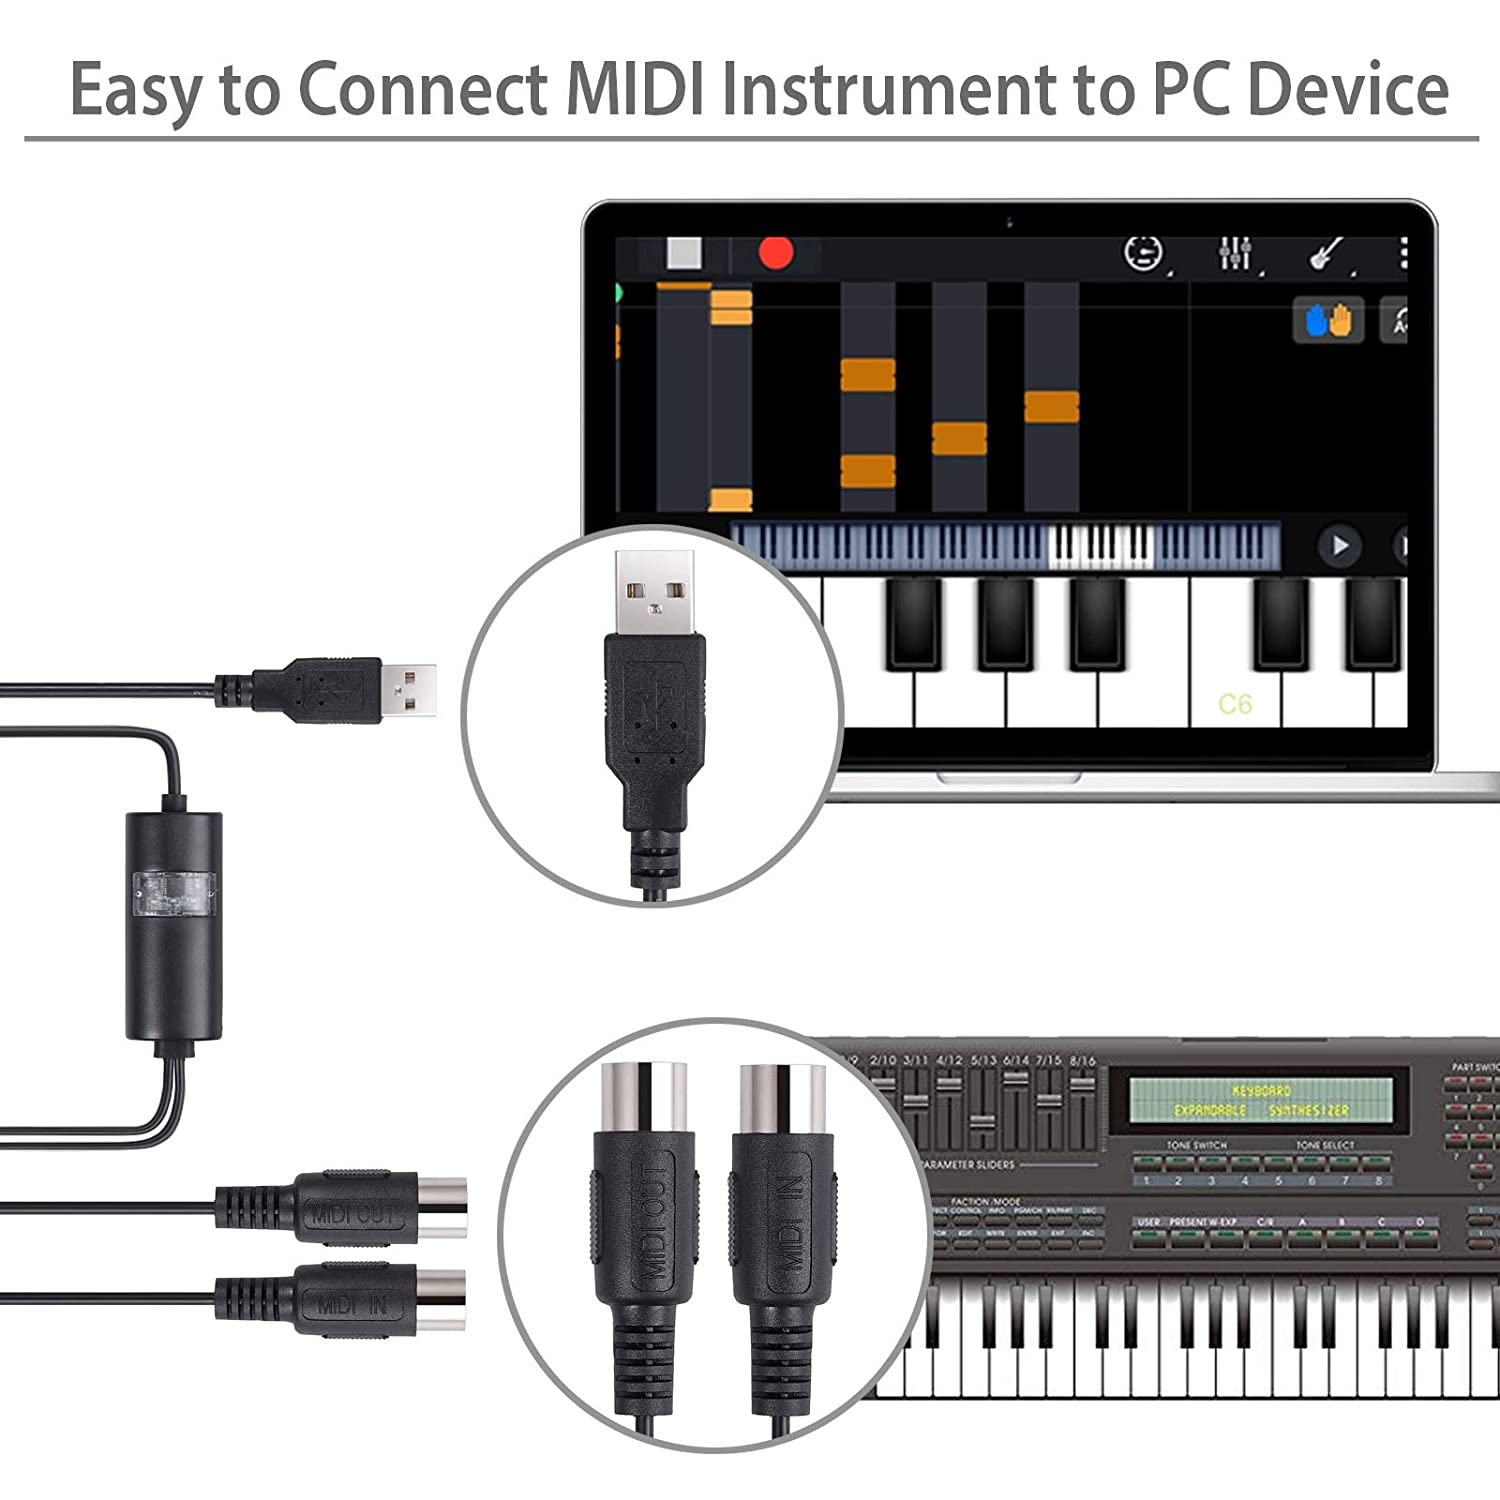 MIDI USB Cable Adapter Interface 5-Pin DIN MIDI to USB in-Out Cable Converter for Mac PC Laptop to Music Piano Keyboard 6.5Ft